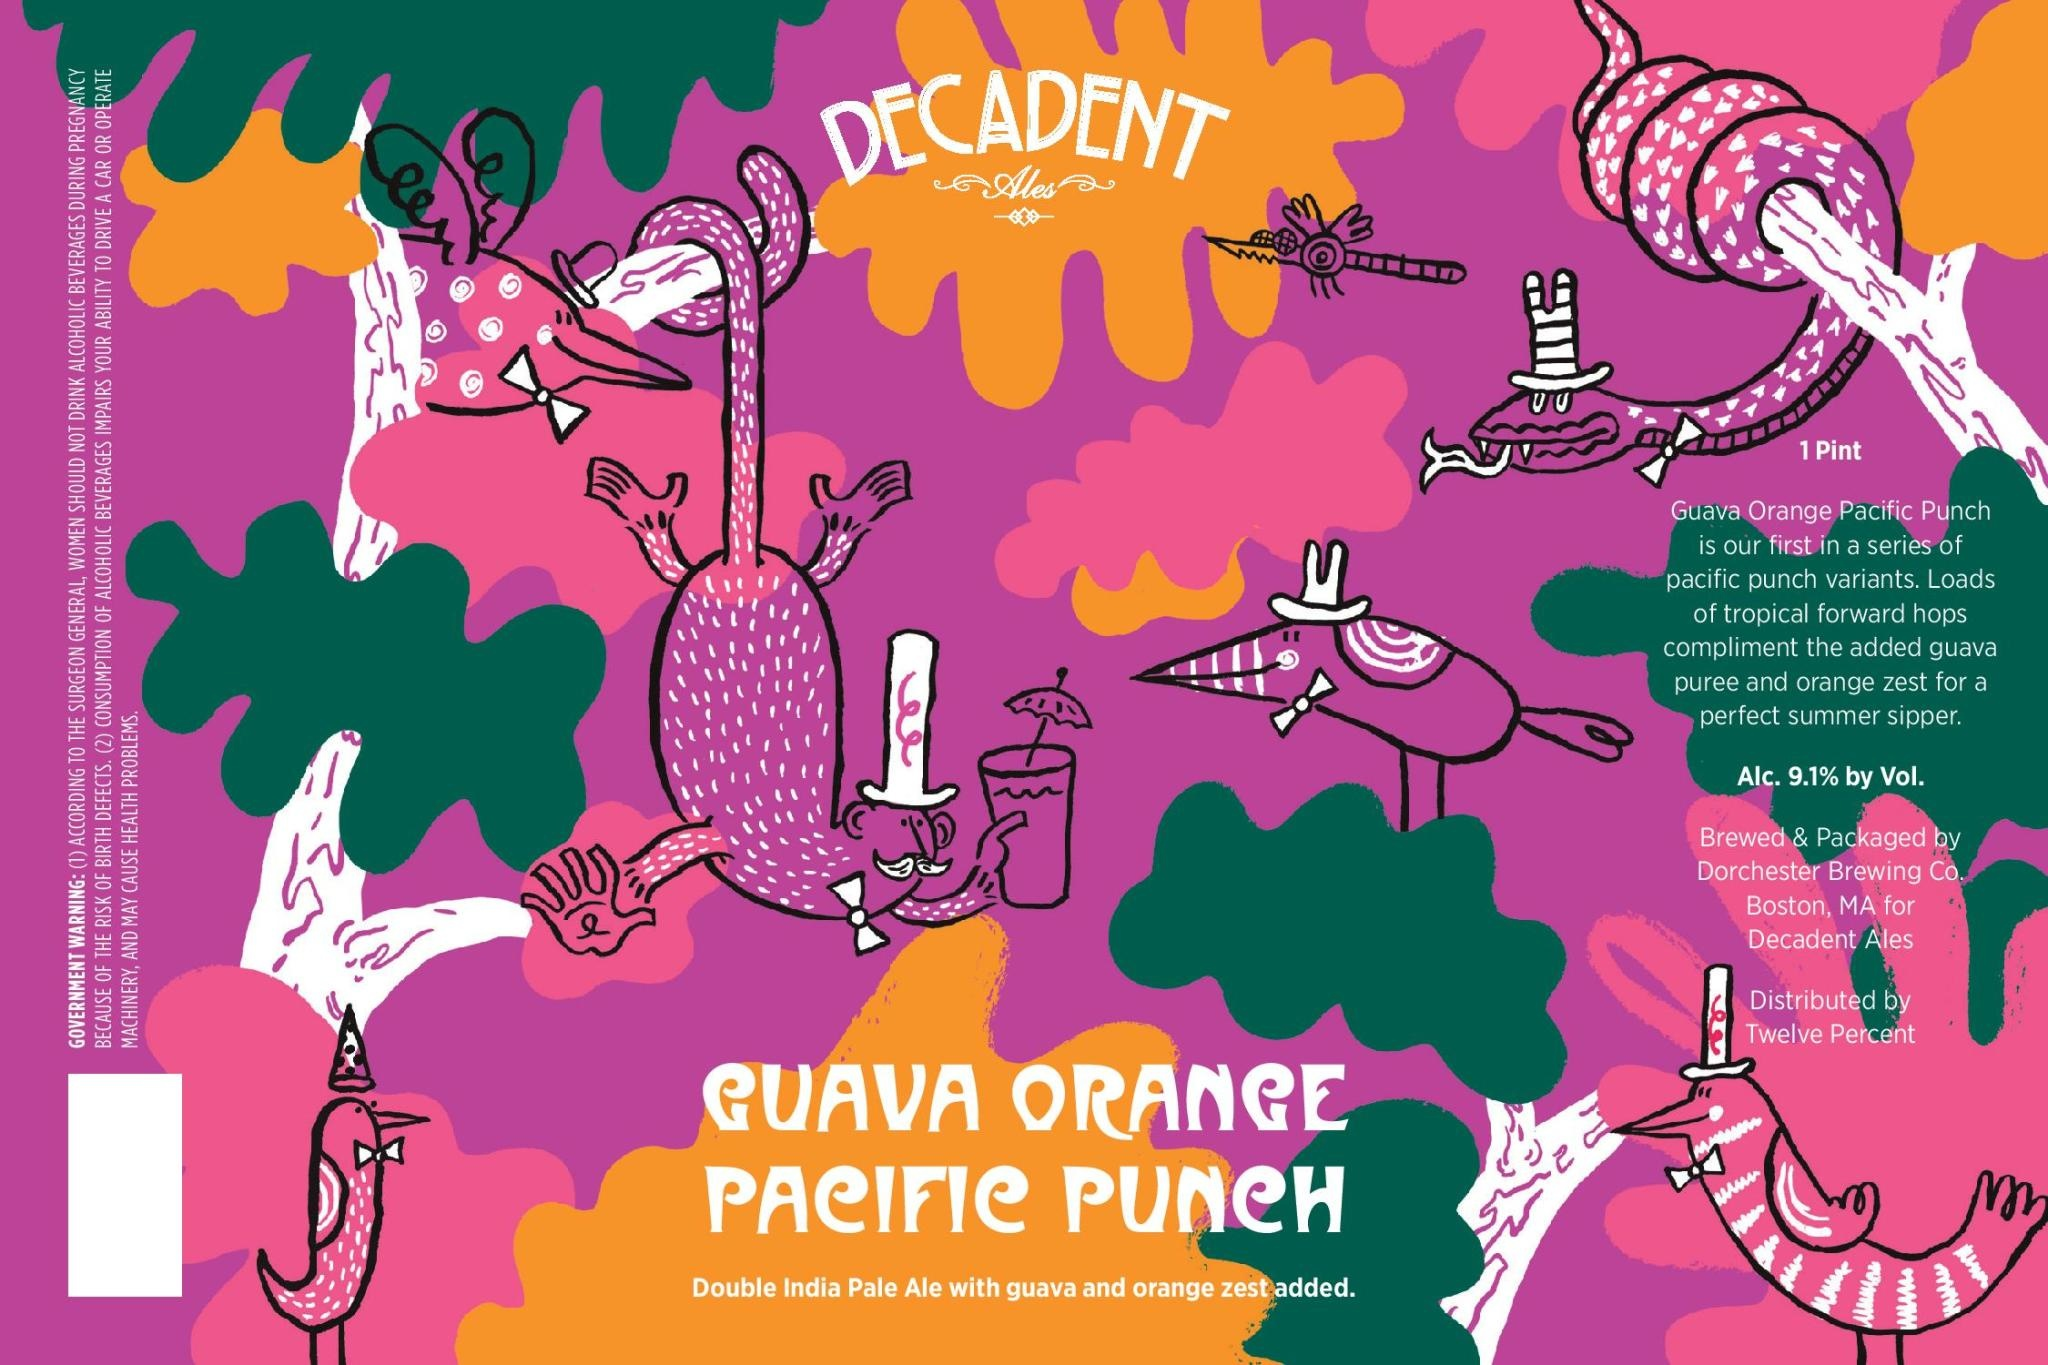 Decadent Ales 'Guava Orange Pacific Punch' Double IPA 16oz Can